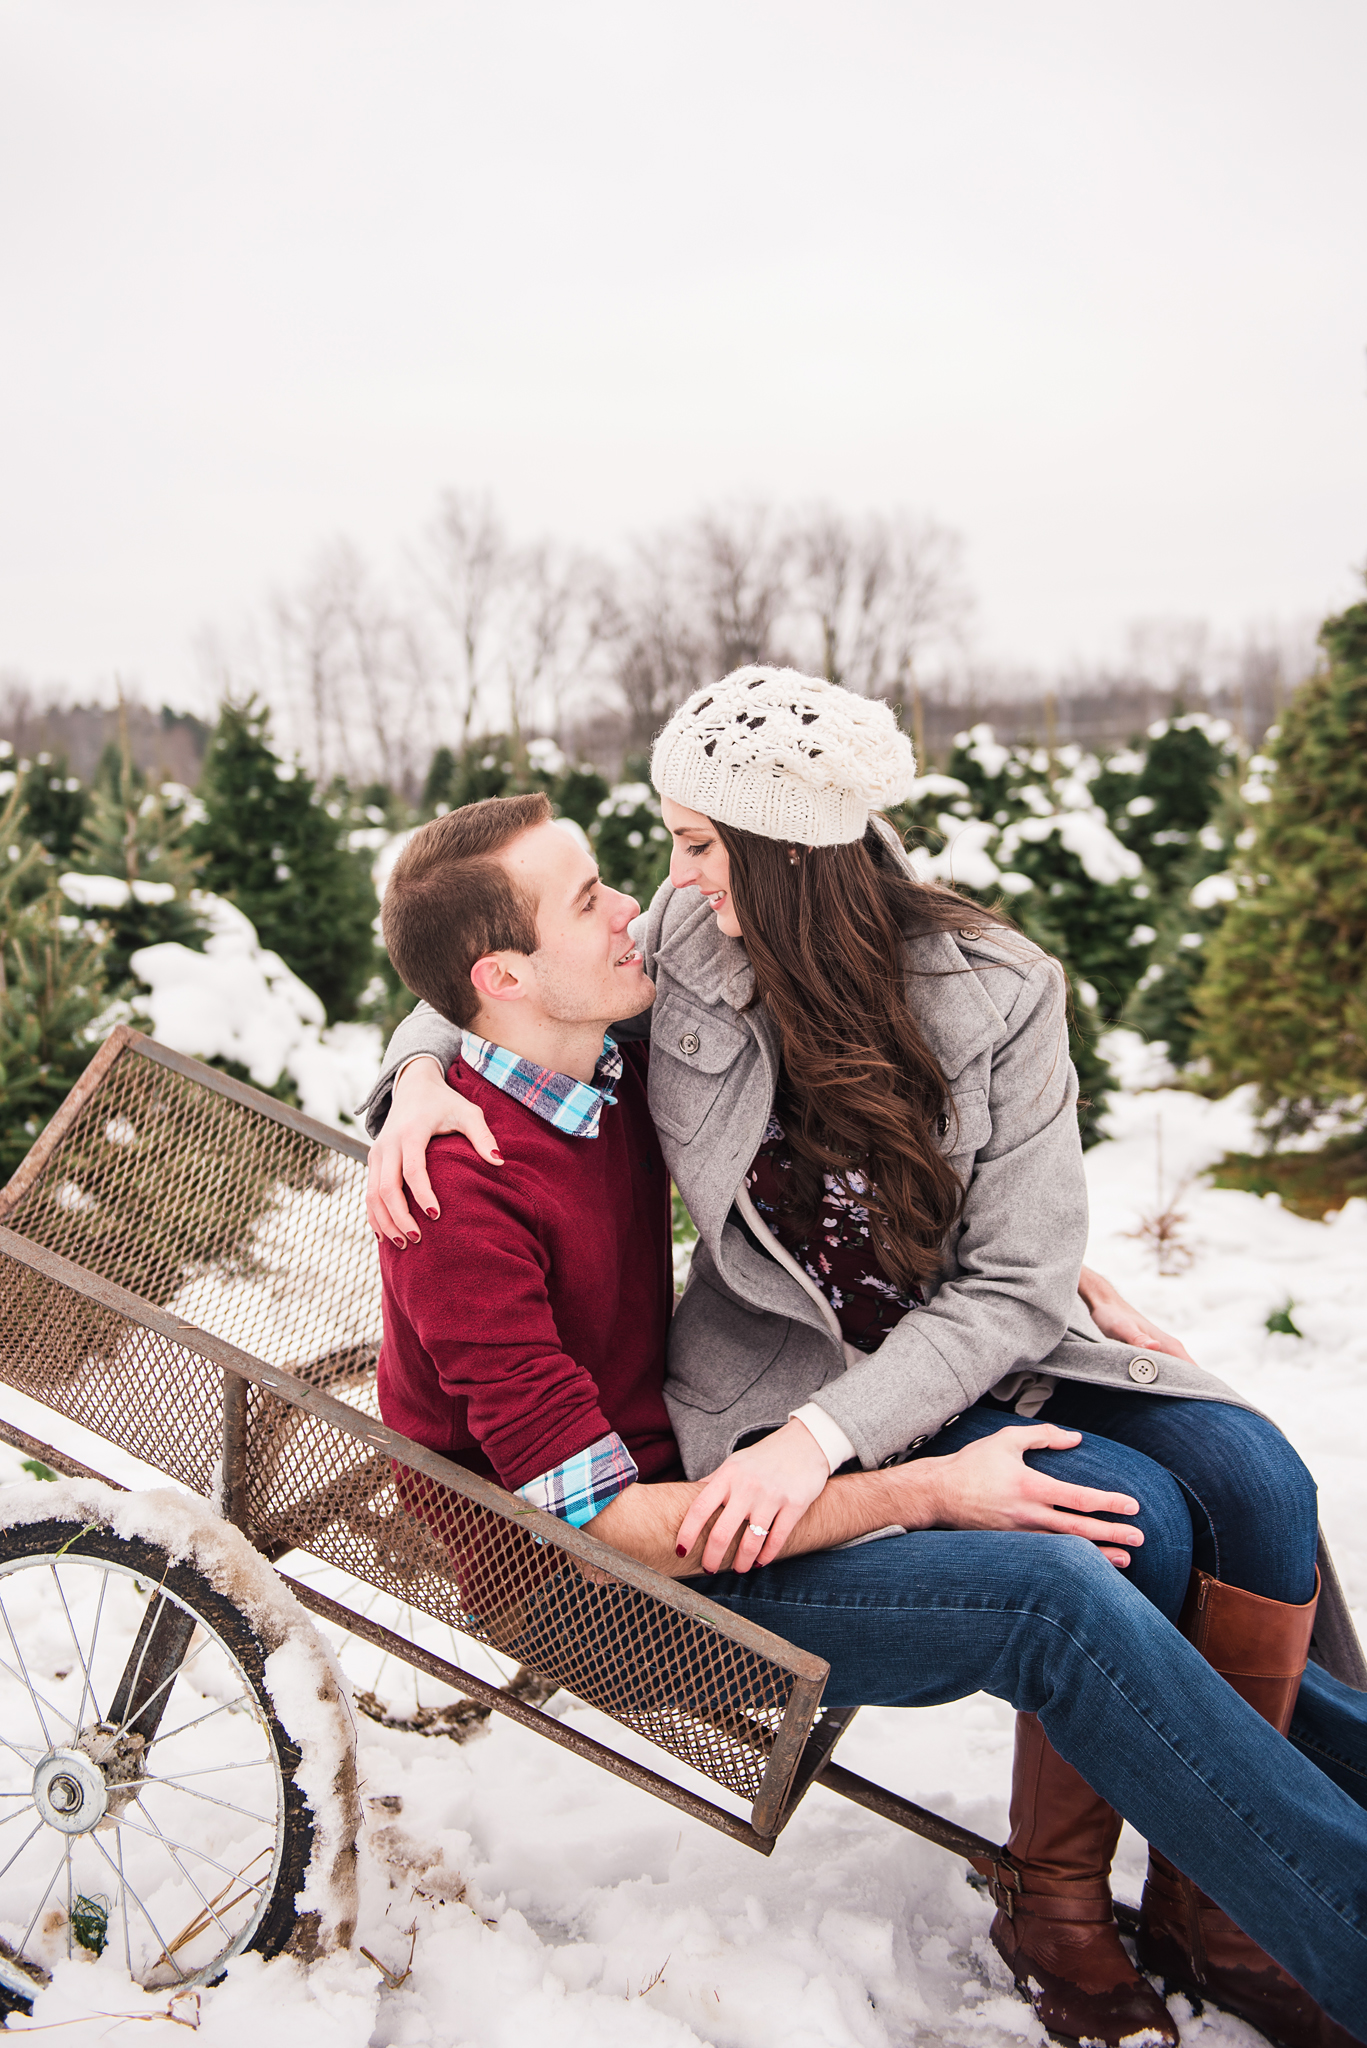 Woody_Acres_Rochester_Engagement_Session_JILL_STUDIO_Rochester_NY_Photographer_154218.jpg